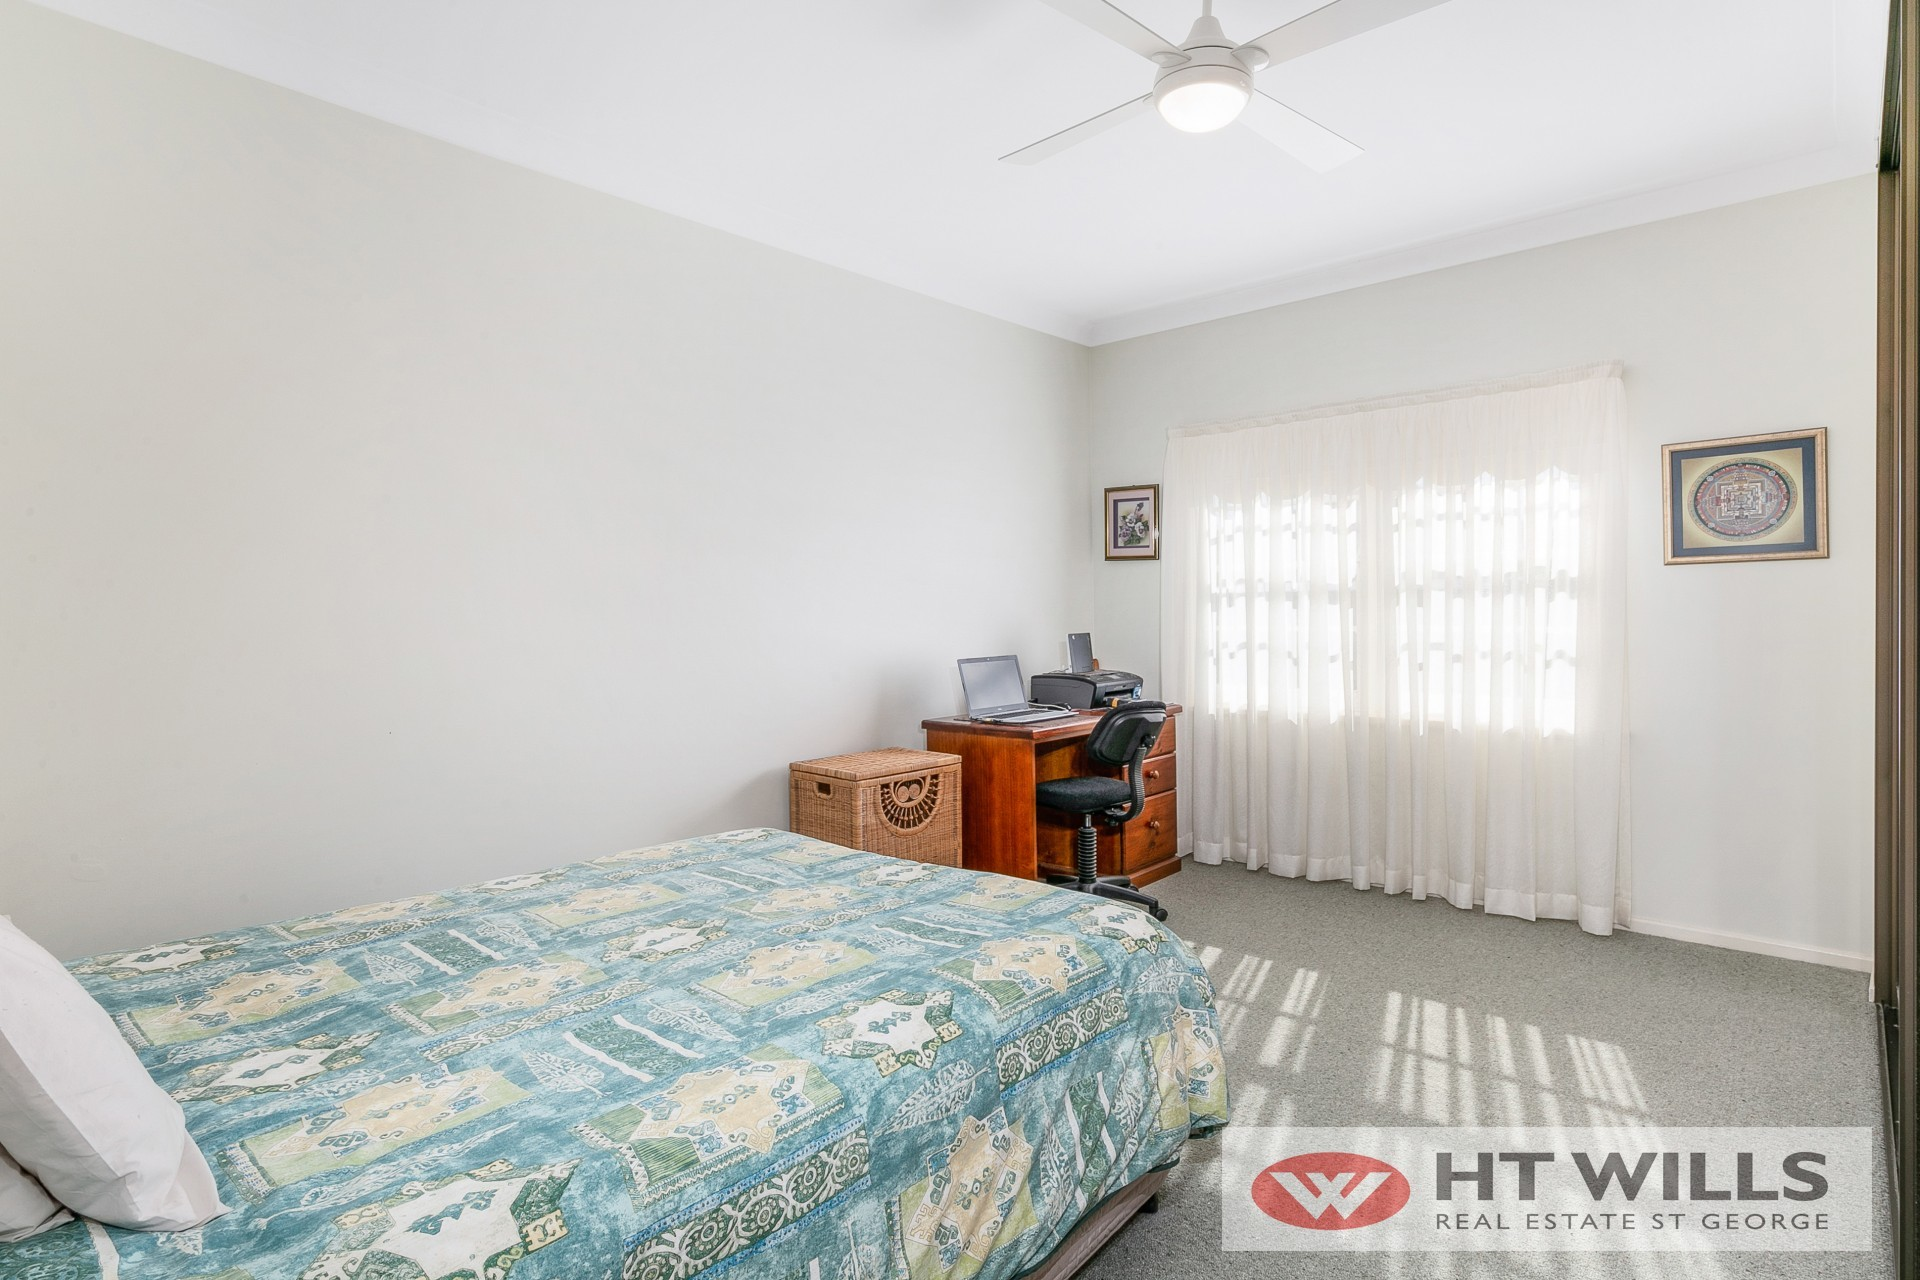 Image: Bright easy care villa offers lifestyle convenience